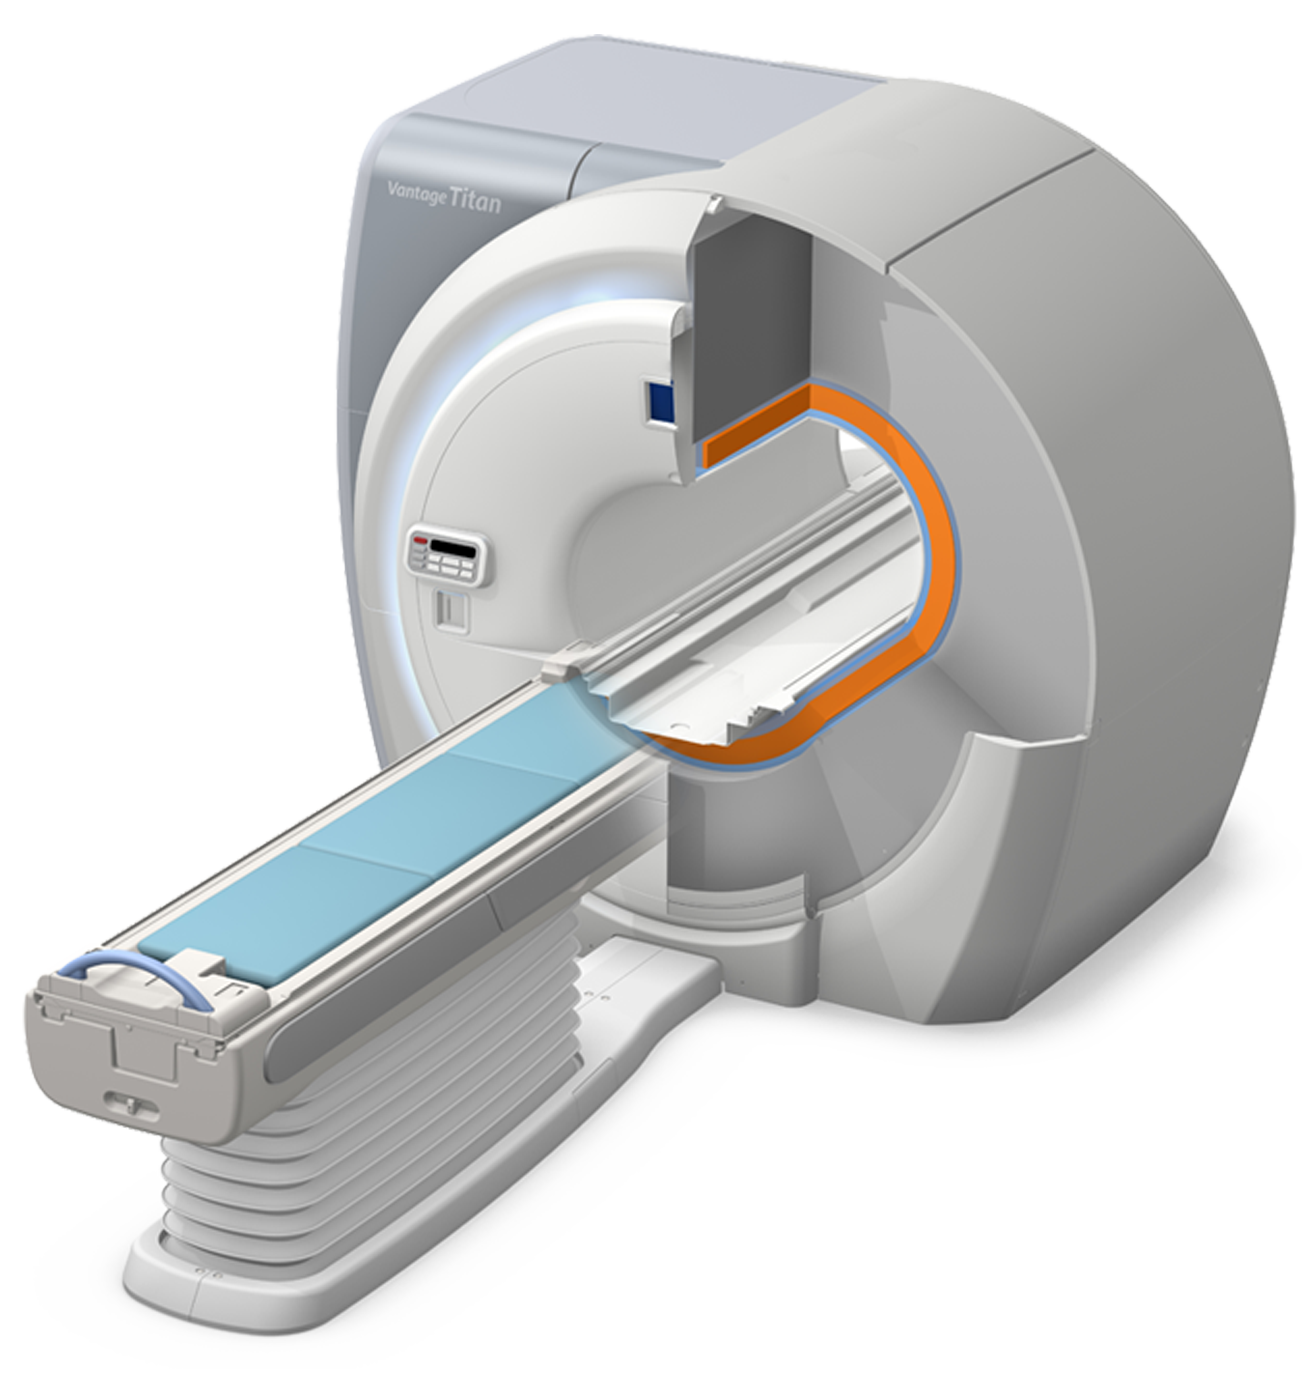 3T MRI Scanner Quiet MR Machine